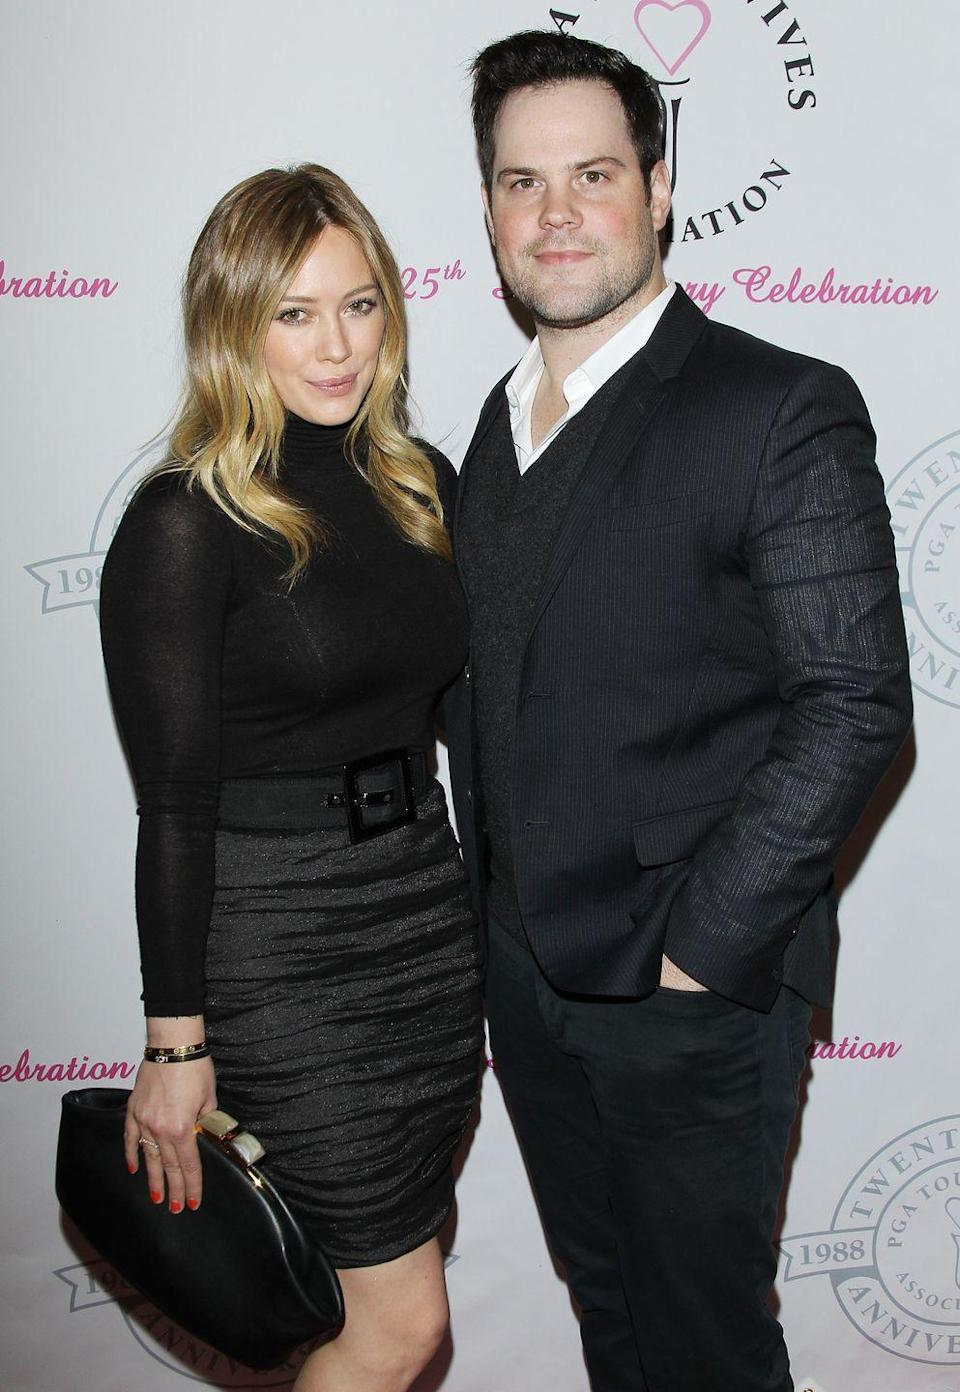 """<p>Hilary Duff is currently expecting her second child with husband Matthew Koma, but don't forget about her first marriage way back when. The Disney star and actress married NFL player Mike Comrie in 2010, when she was only 22 years old. They welcomed a son, Luca, in 2012, <a href=""""https://www.eonline.com/news/946066/how-hilary-duff-started-over-after-heartbreak-motherhood-new-love-and-her-best-role-yet"""" rel=""""nofollow noopener"""" target=""""_blank"""" data-ylk=""""slk:but divorced in 2016"""" class=""""link rapid-noclick-resp"""">but divorced in 2016</a>.</p>"""